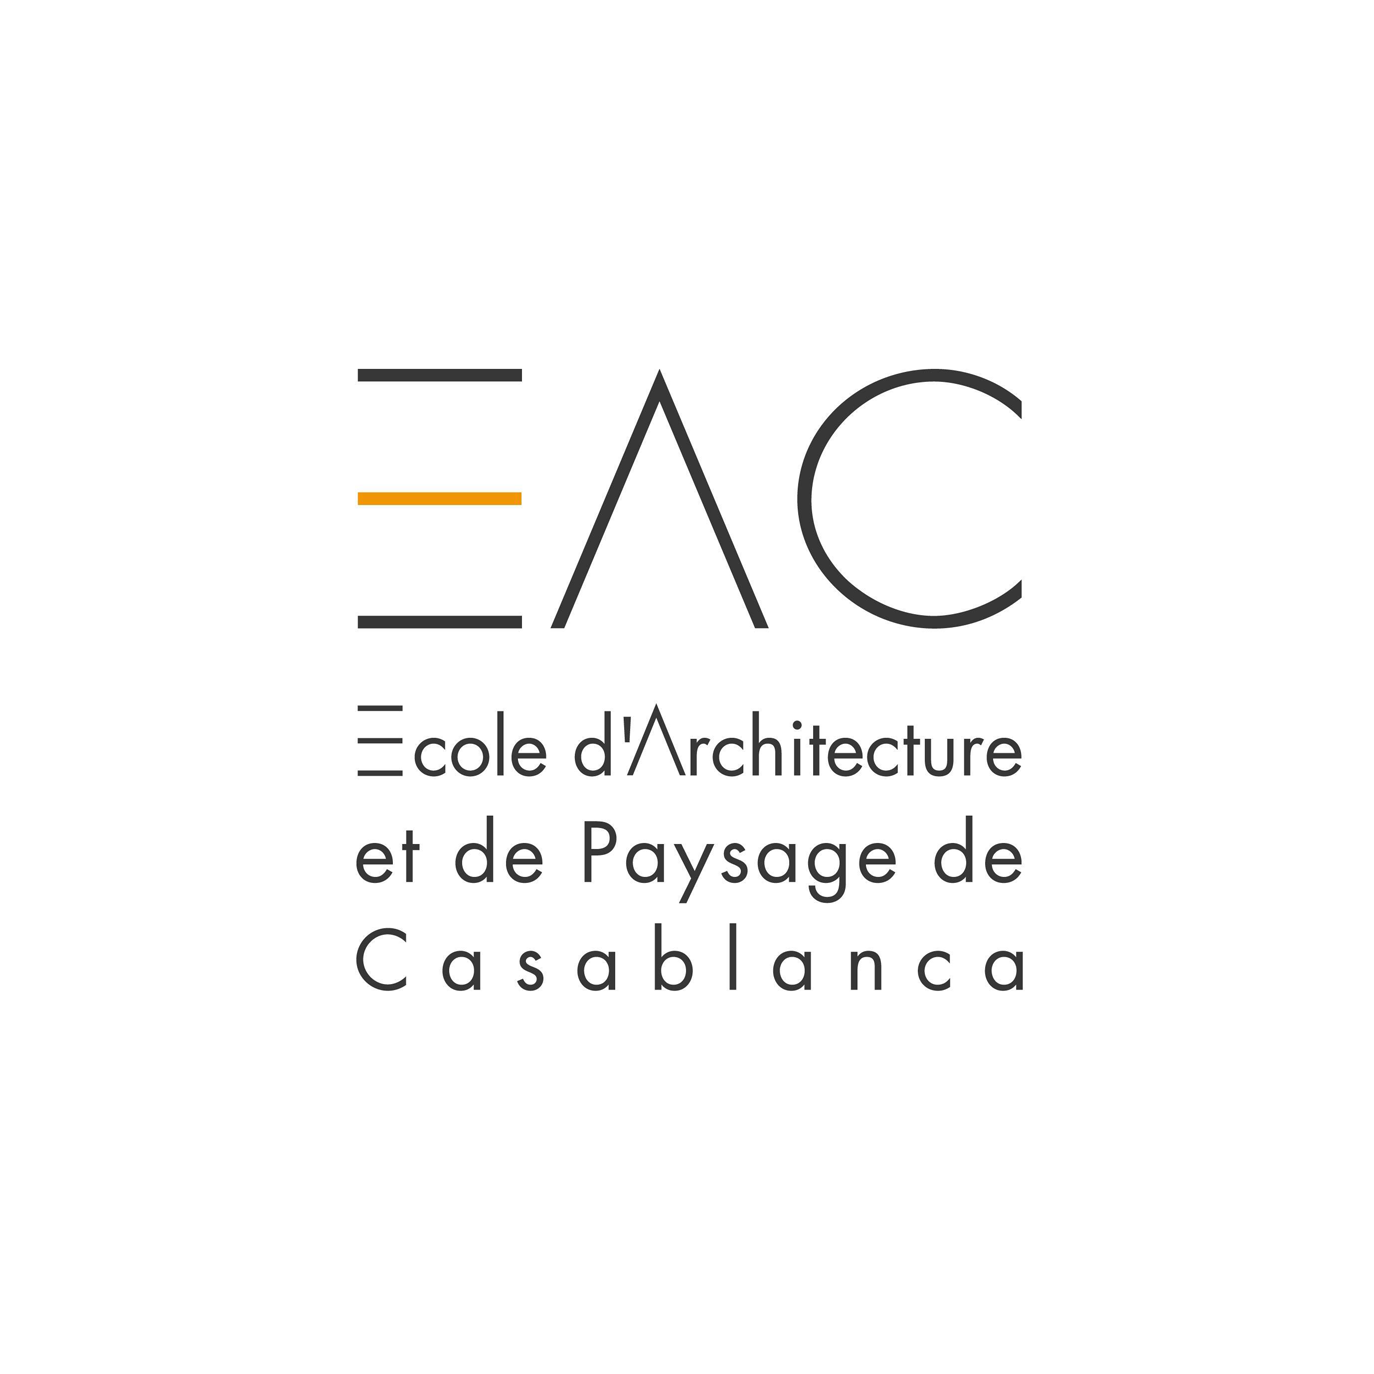 ecole d 39 architecture et de paysage de casablanca welovebuzz. Black Bedroom Furniture Sets. Home Design Ideas